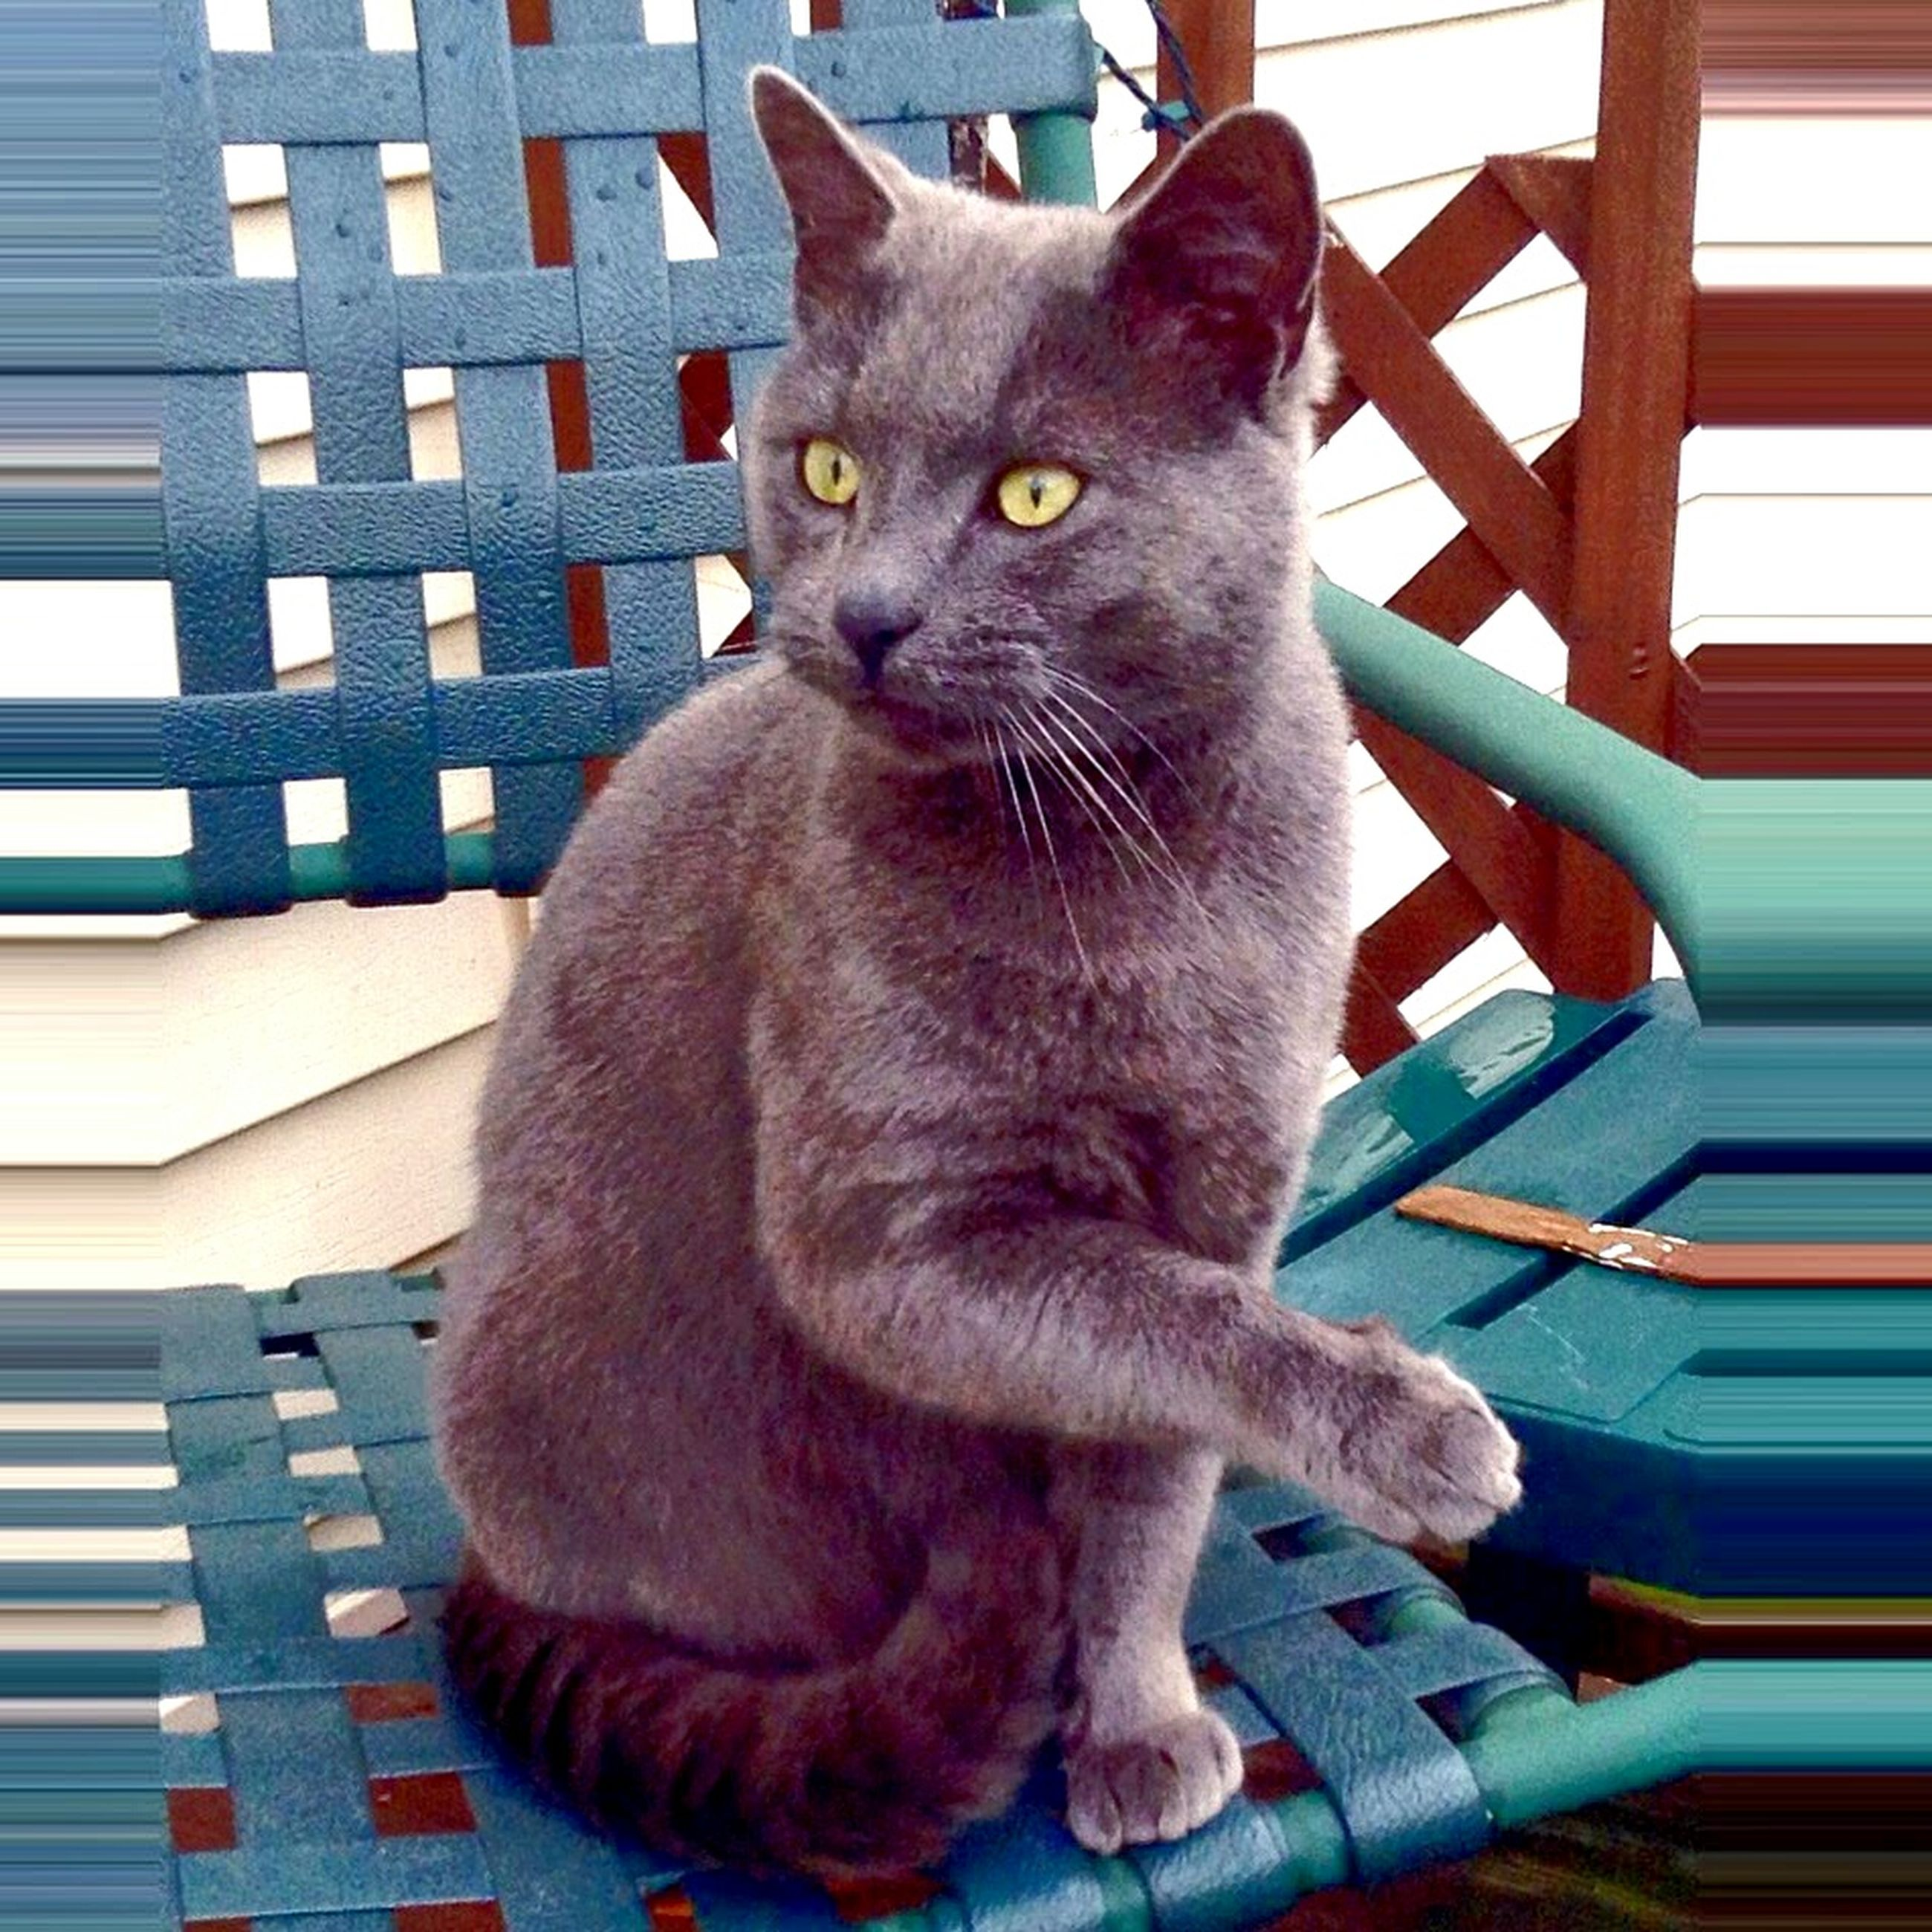 domestic cat, pets, one animal, cat, domestic animals, animal themes, mammal, feline, whisker, sitting, portrait, looking at camera, indoors, staring, close-up, relaxation, alertness, full length, zoology